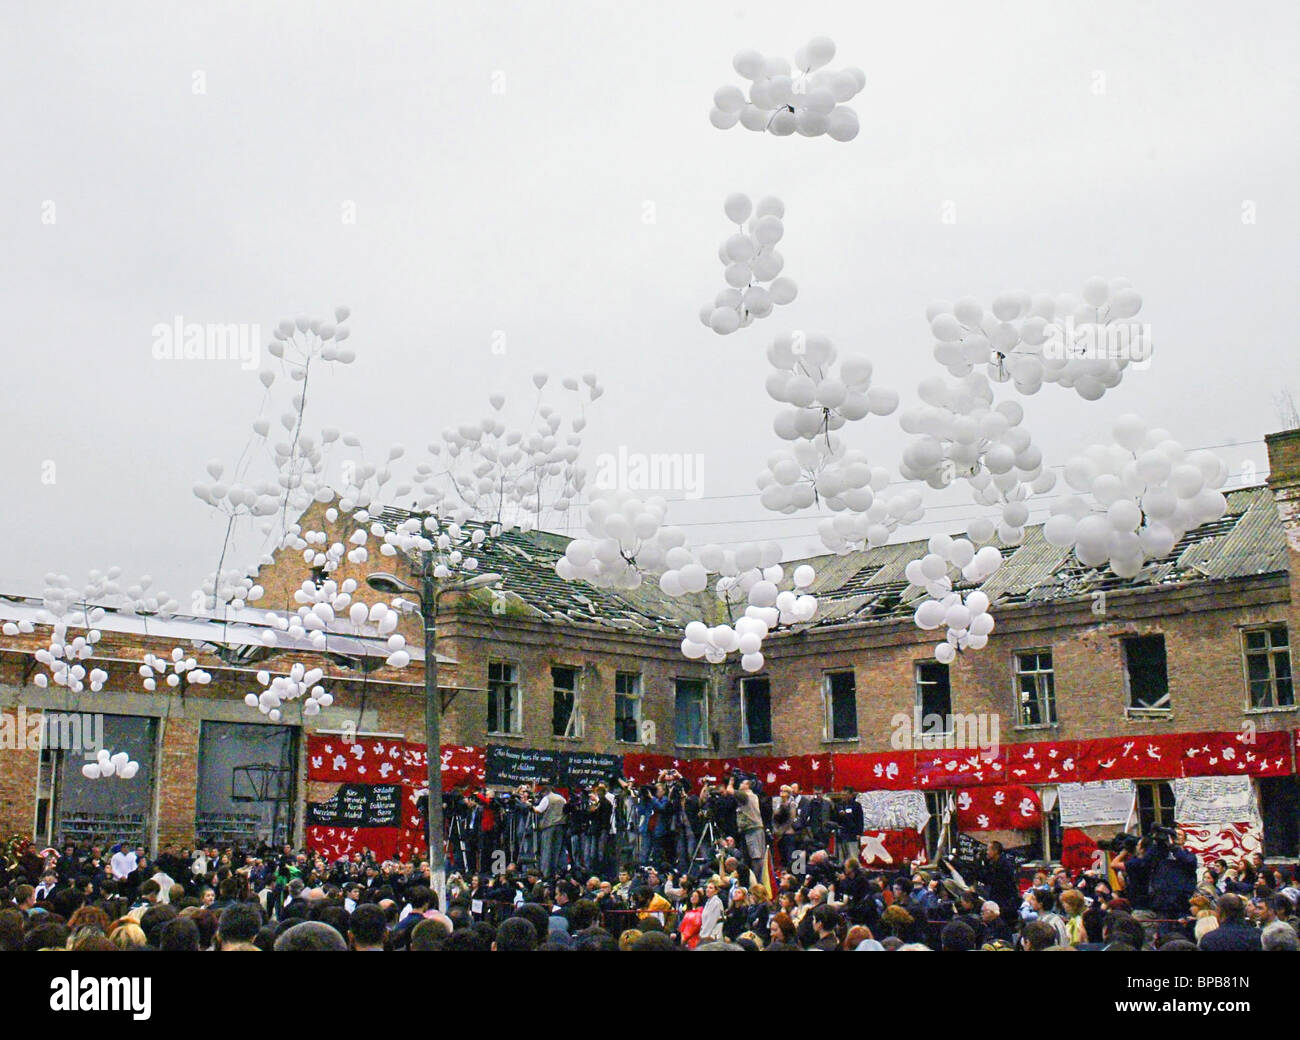 Mourning ceremonies at Beslan's School Number One - Stock Image